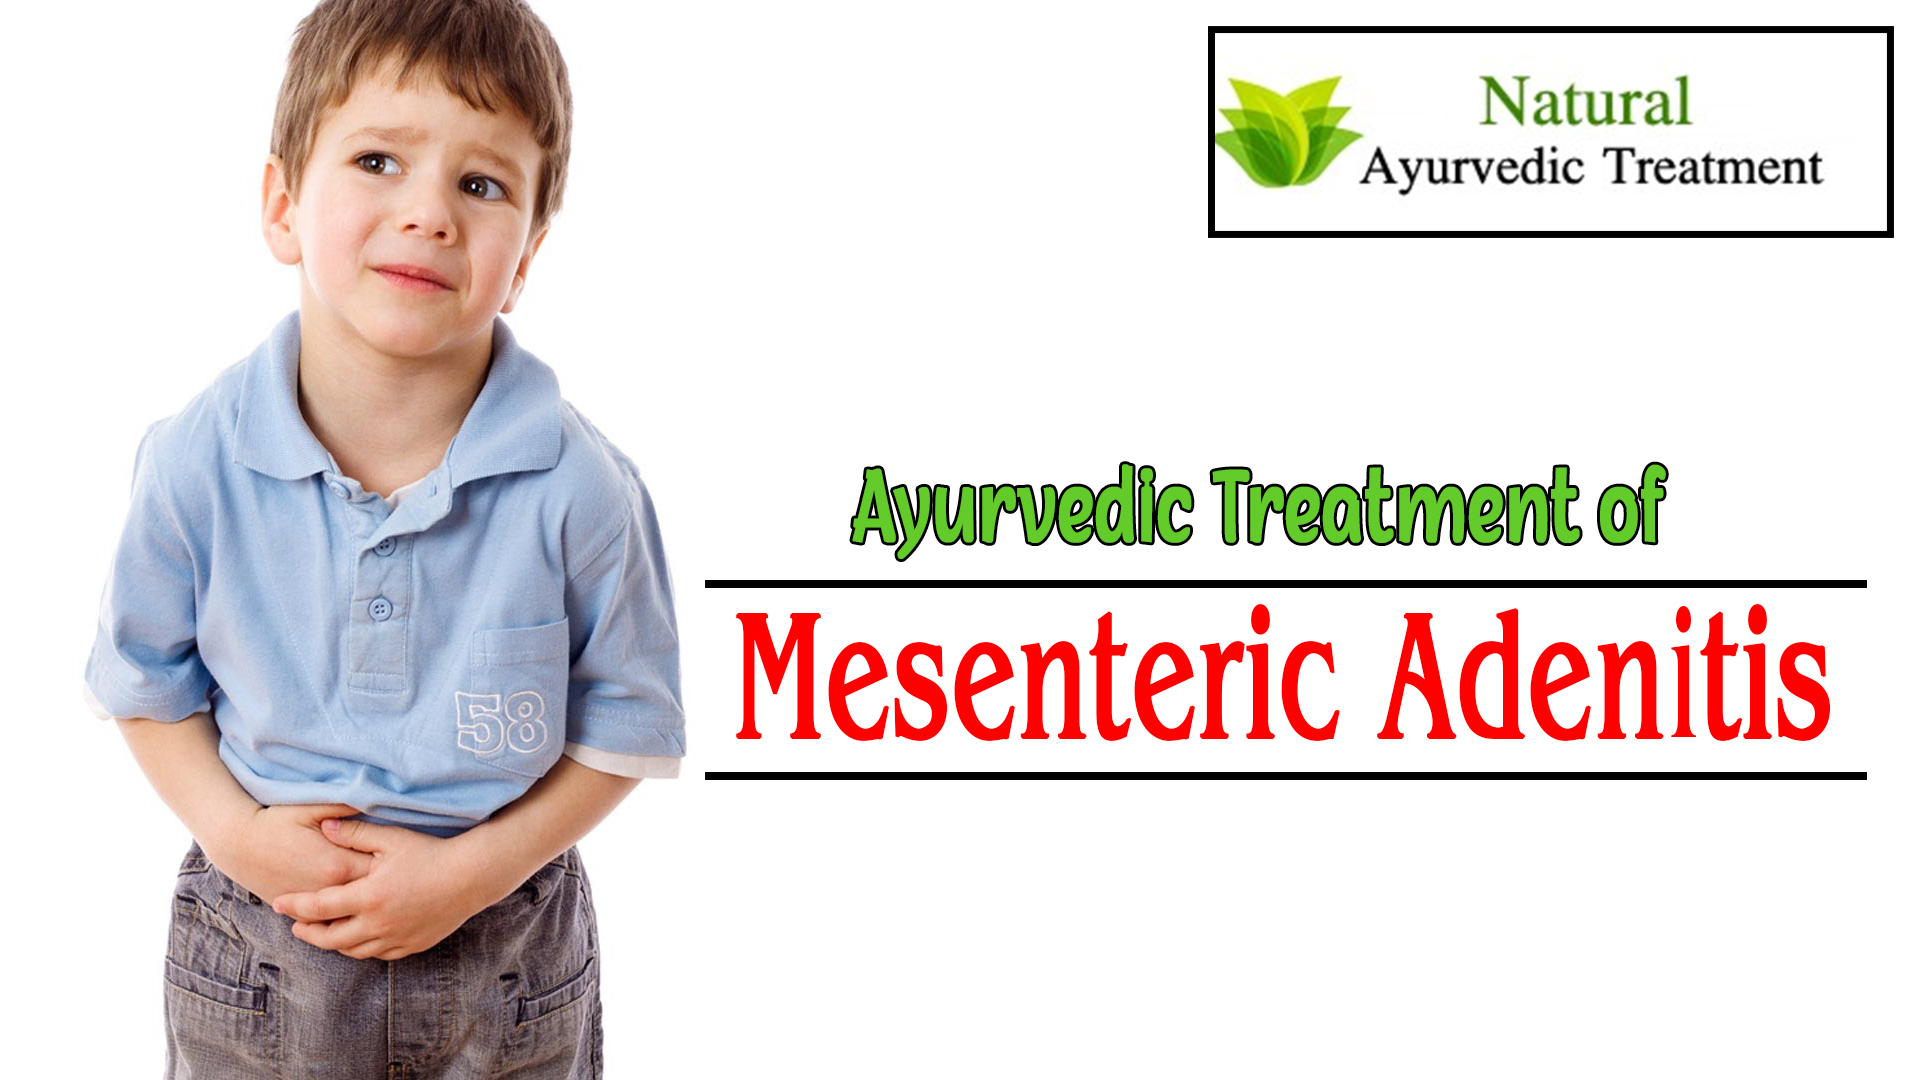 Ayurvedic Treatment for Mesenteric Adenitis - Symptoms & Herbal Remedies